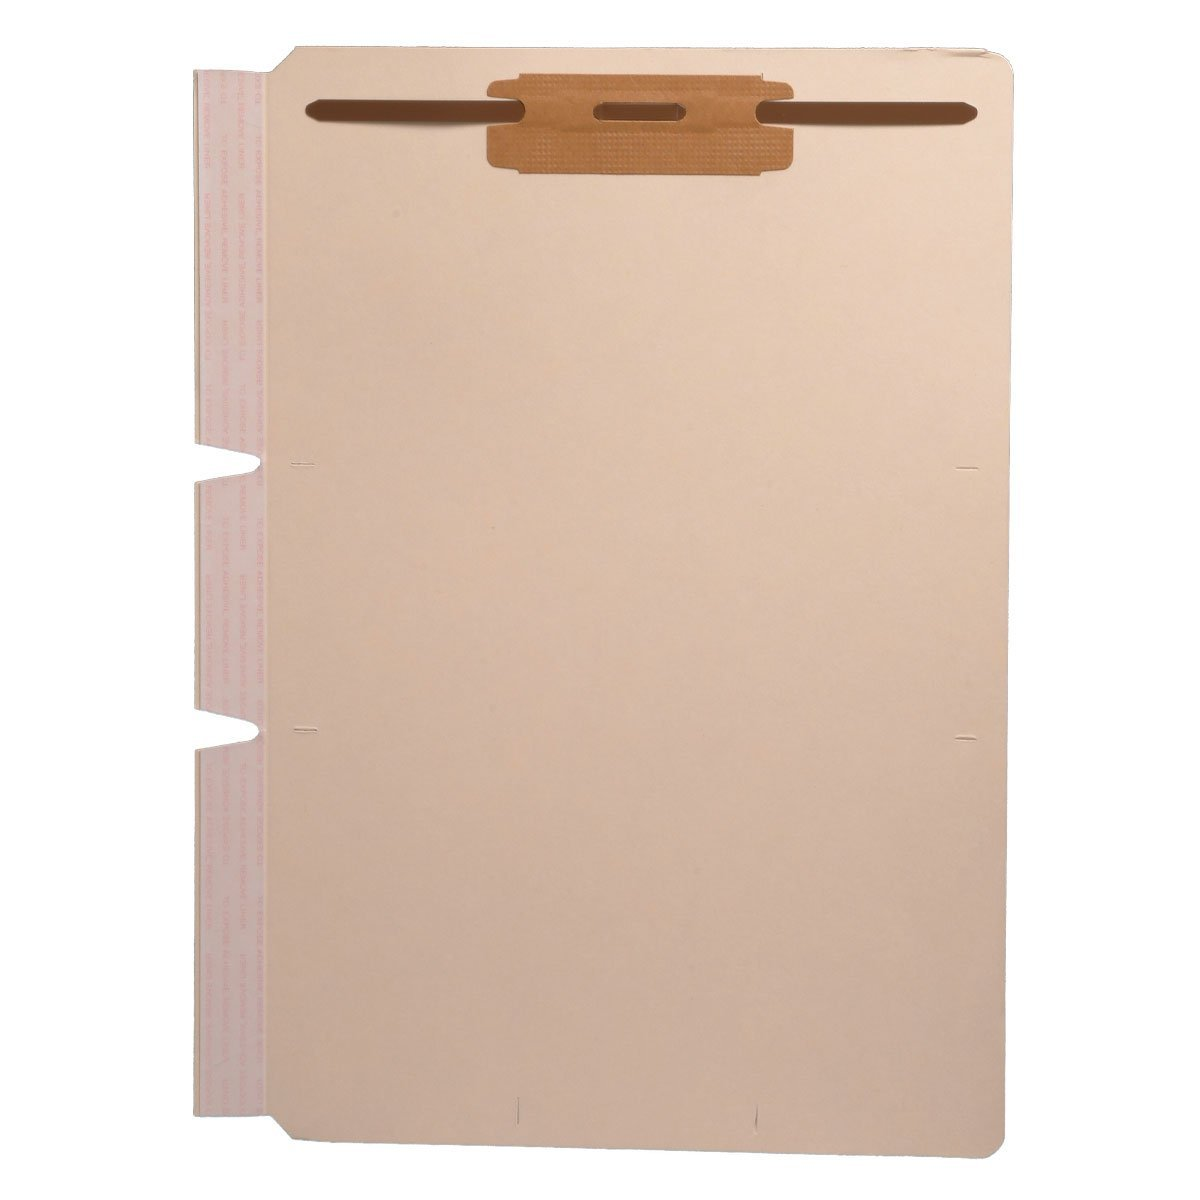 Self Adhesive Divider, Standard Side Flap, 2'' Fastener on Top (Box of 100) by Ecom Folders